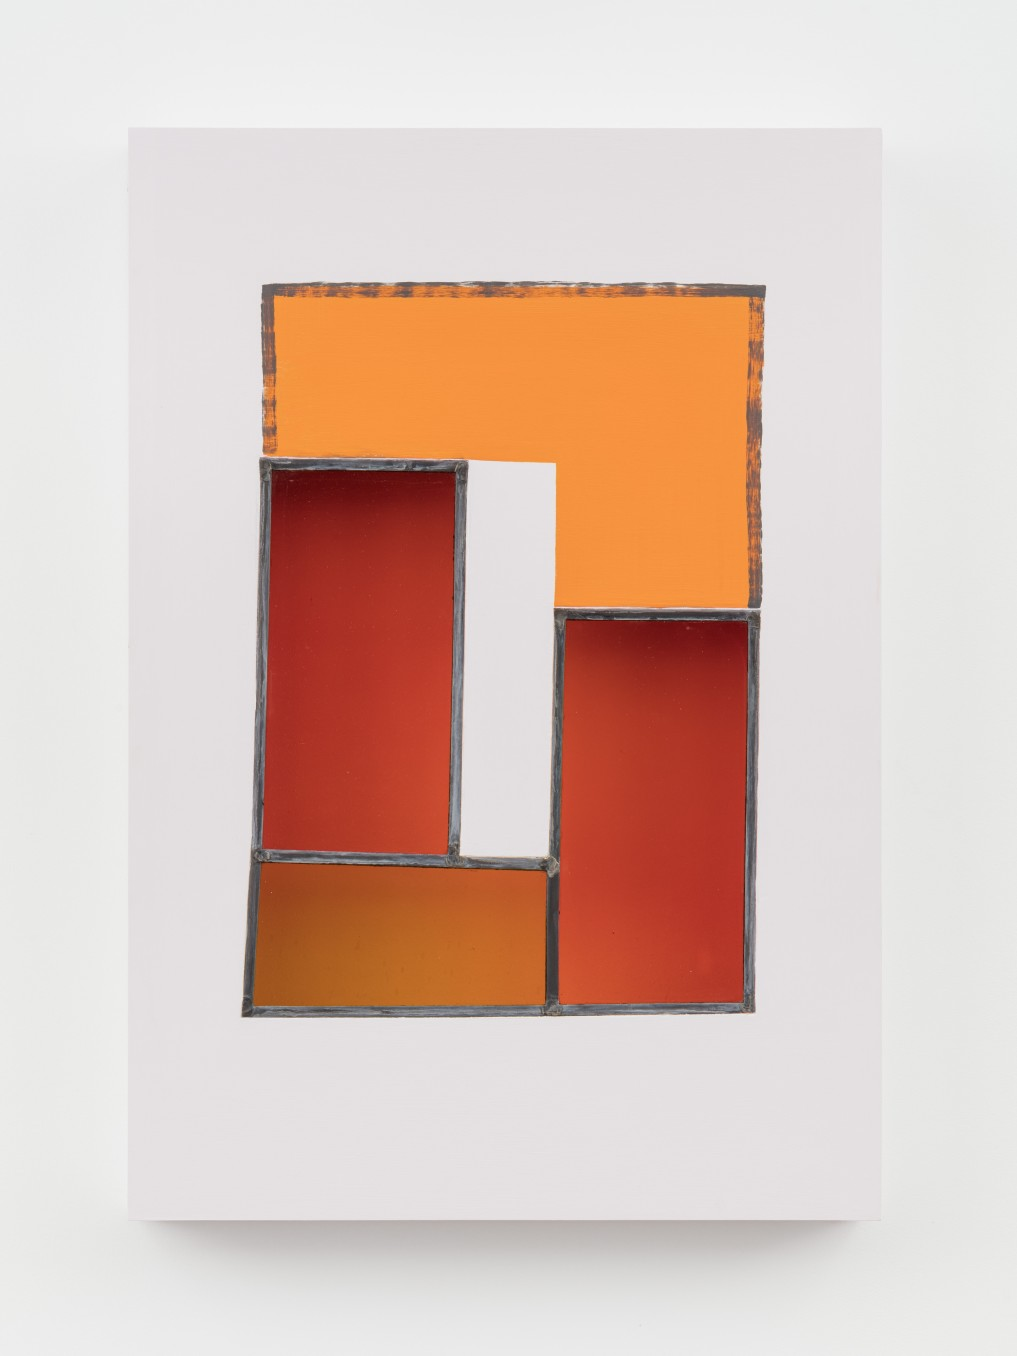 Jessica Warboys, HOUR I, 2019, Acrylic, antique glass, lead came, plywood, 87 x 59.7 x 8.9 cm, 34 1/4 x 23 1/2 x 3 1/2 in